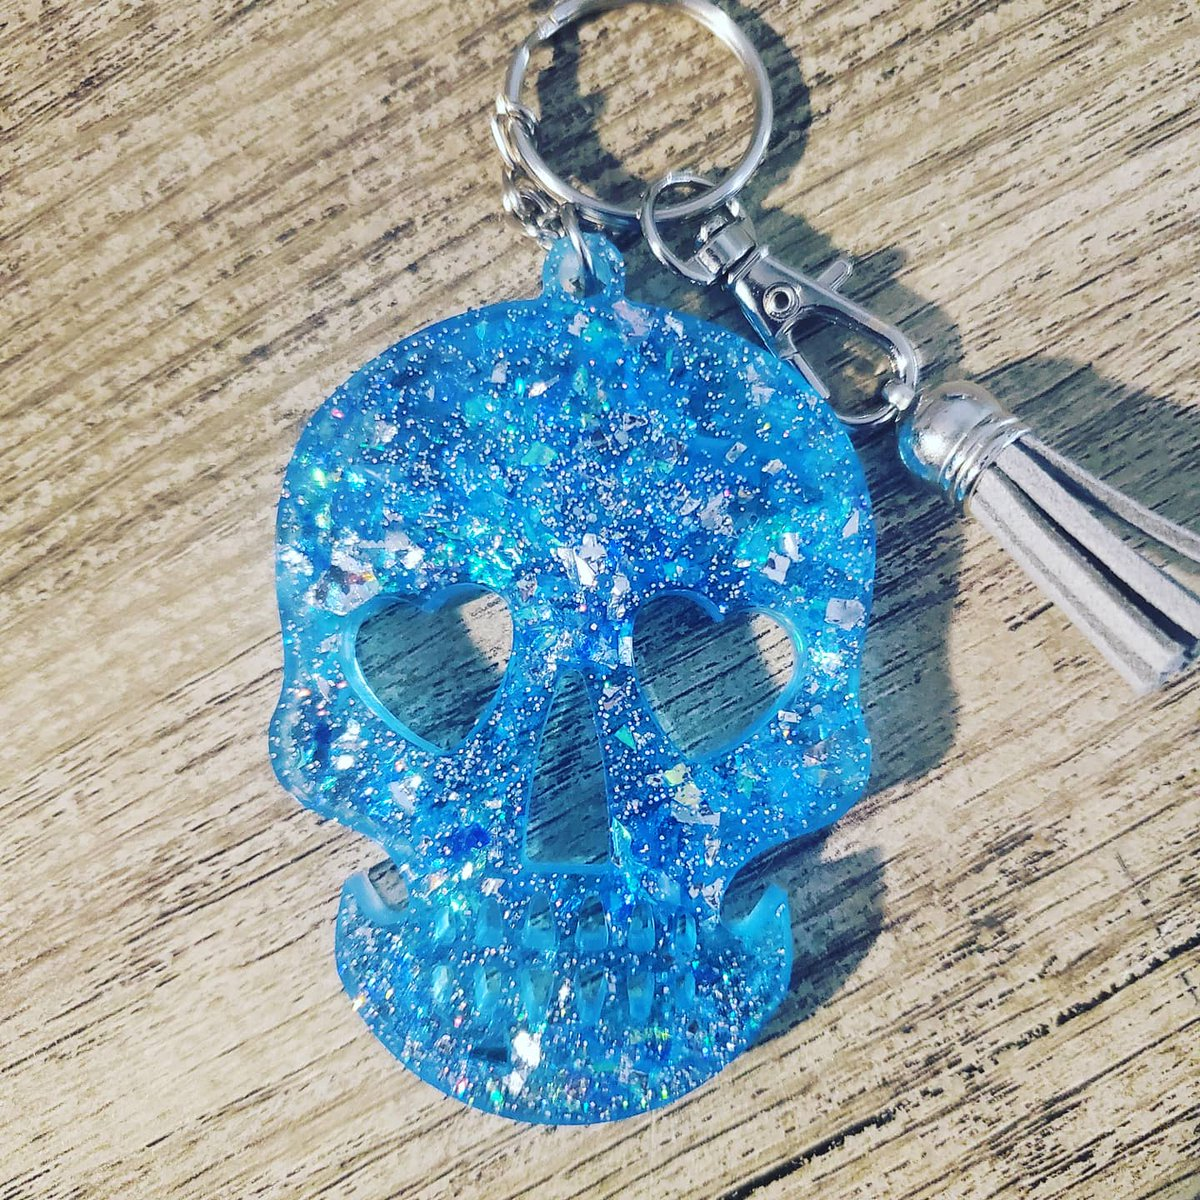 Will be uploading these this weekend! More to come soon   Like and Share   #resin #keychain #etsyshop #smallbusiness #shopping #skull #alienpic.twitter.com/OJt0pHyMAQ